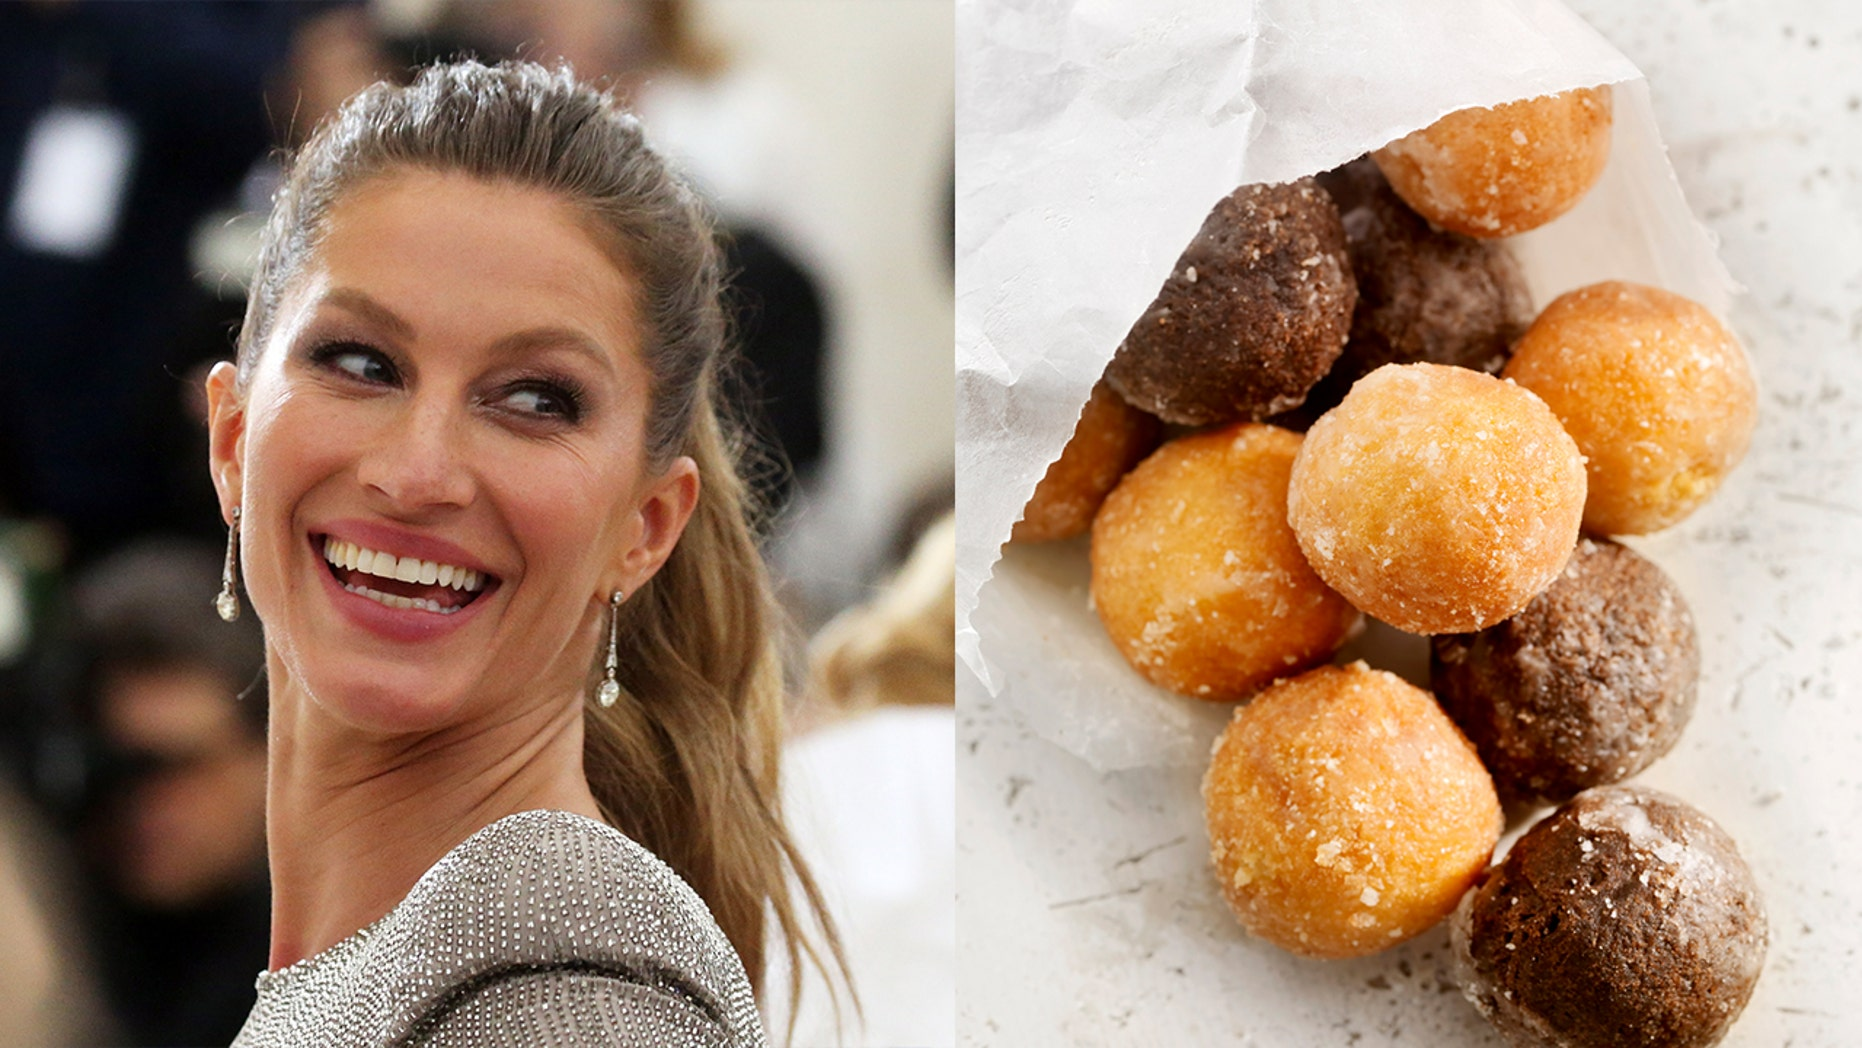 Dunkin' Donuts signature treat has a surprising new fan.